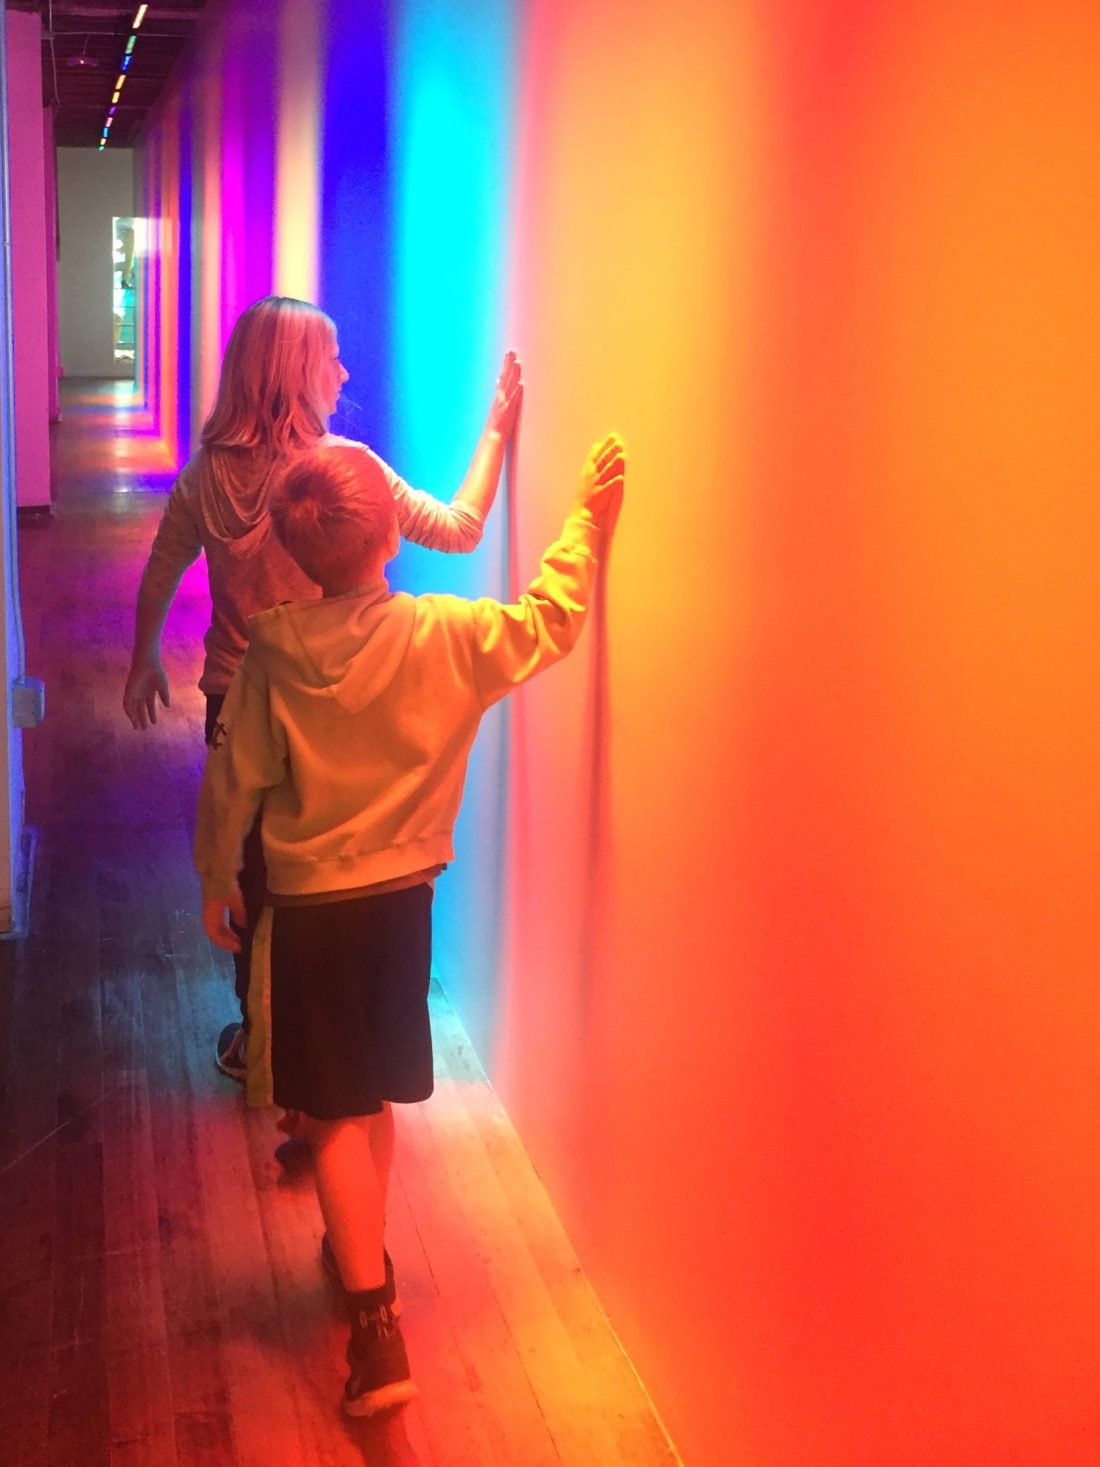 Even walking down a hallway was fun at the Color Factory